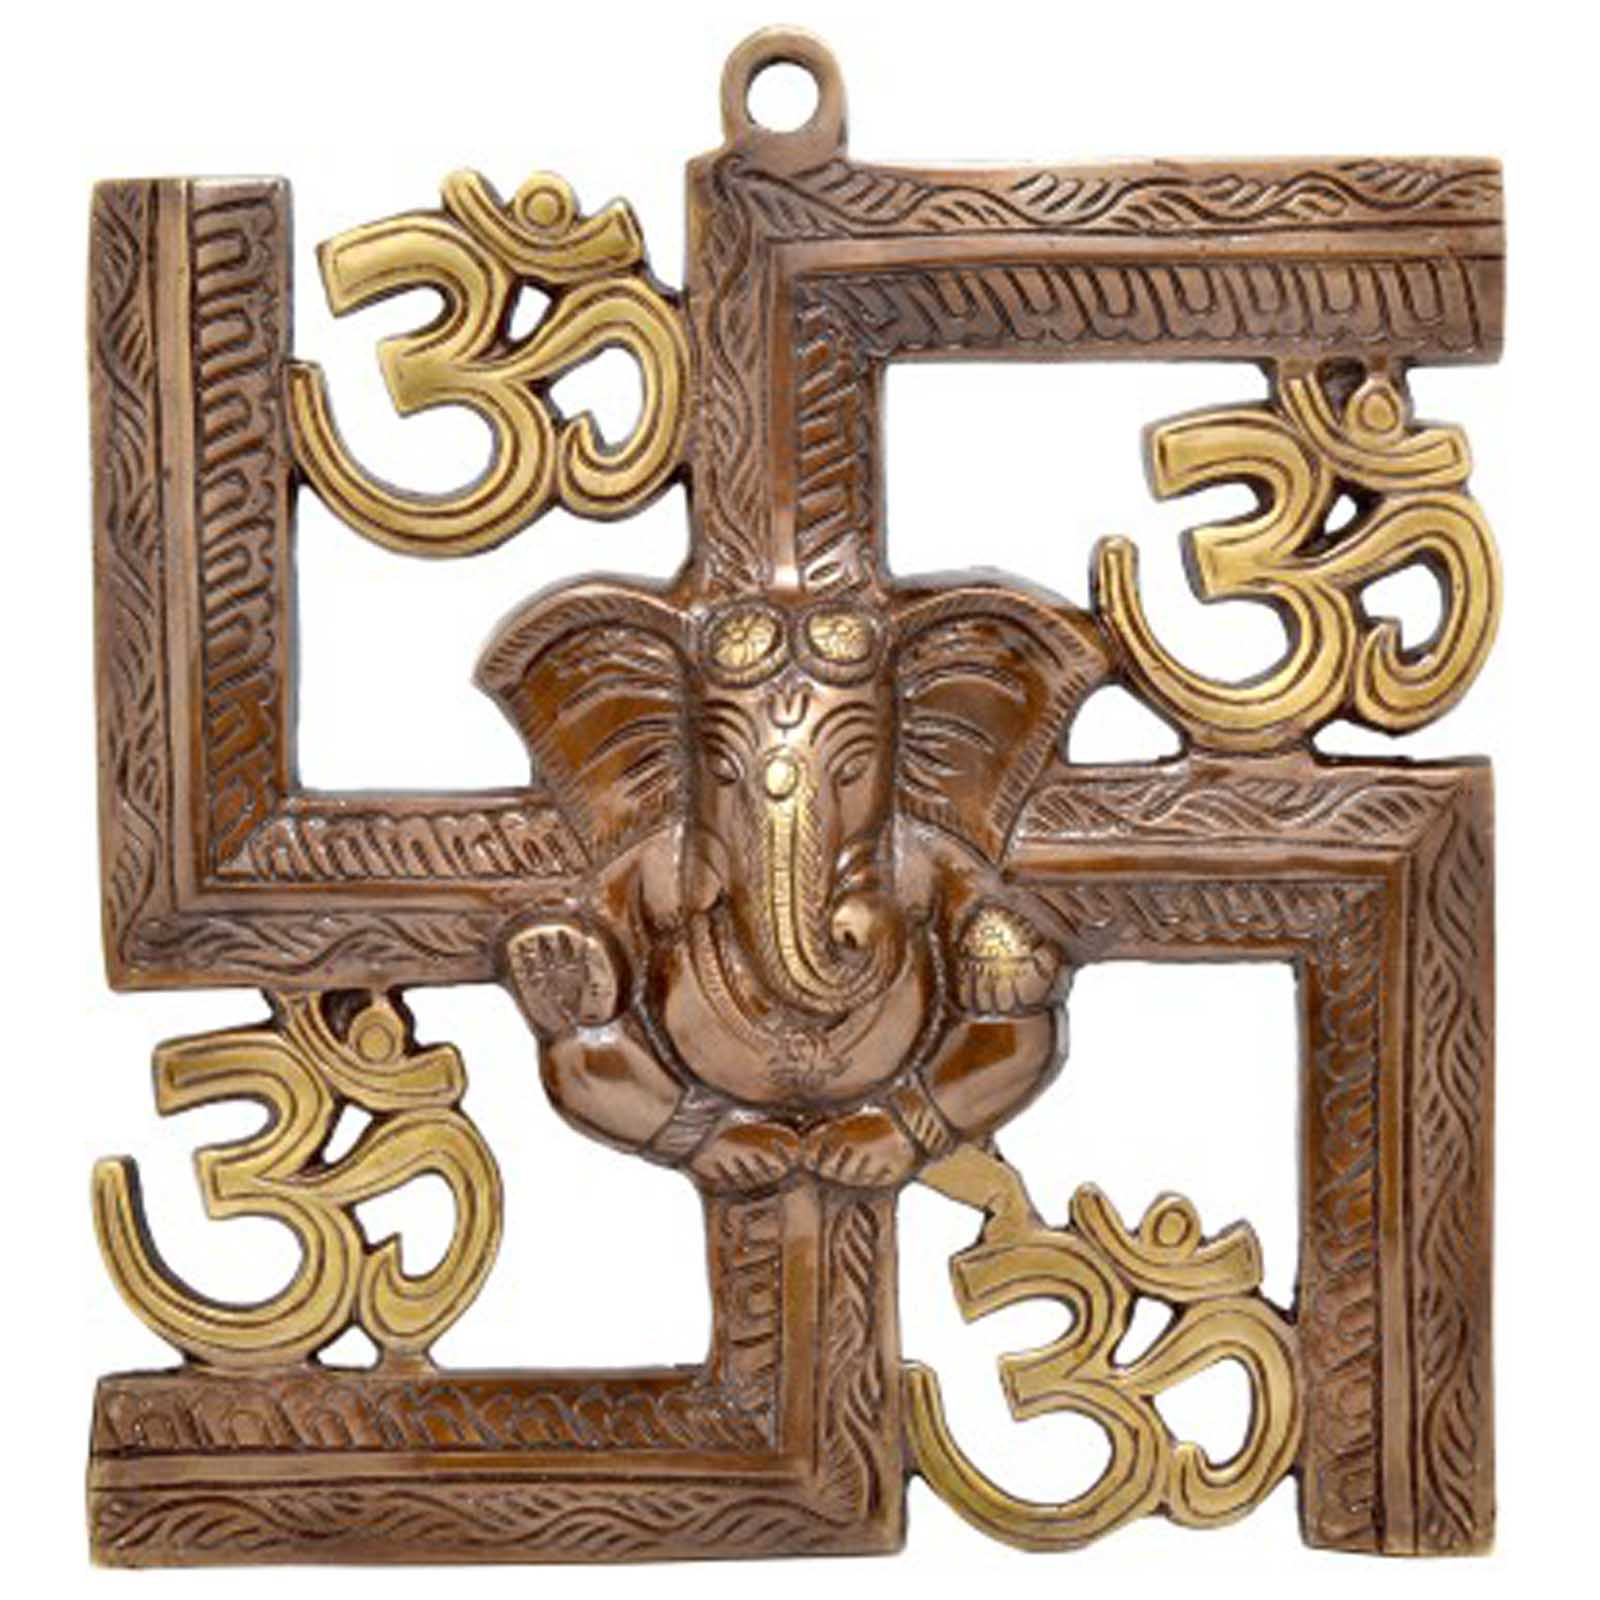 Ganesha and swastik brass wall hanging buy wall decor online for Wall hanging